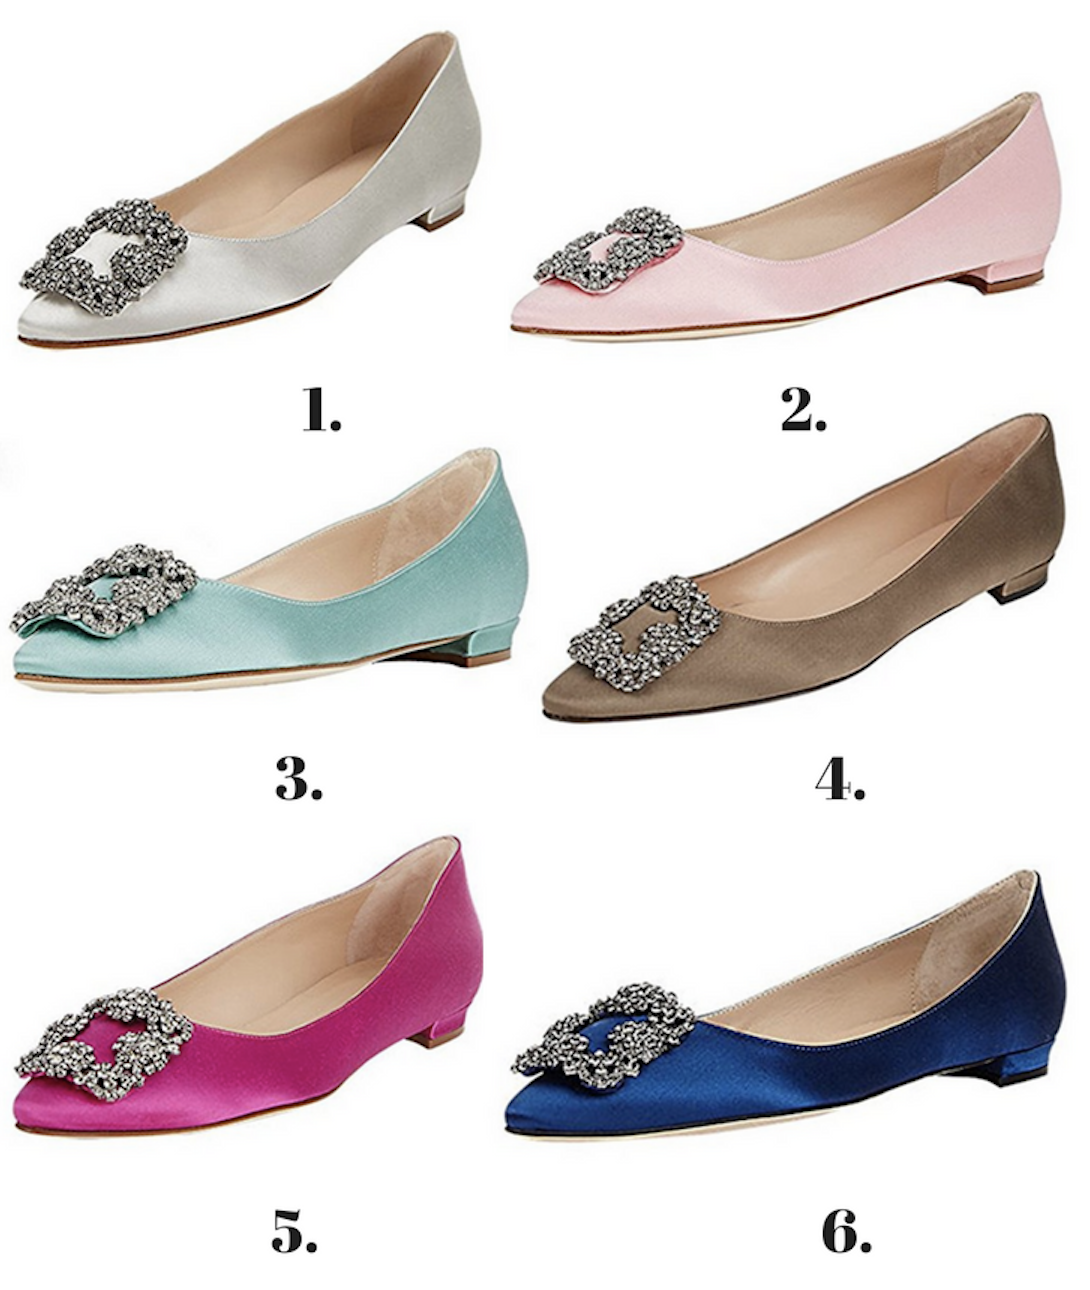 a0ef31e48a1 The ULTIMATE Guide To Manolo Blahnik Dupes  Find Affordable Alternatives To  Steal The Sex And The City High Heels Look